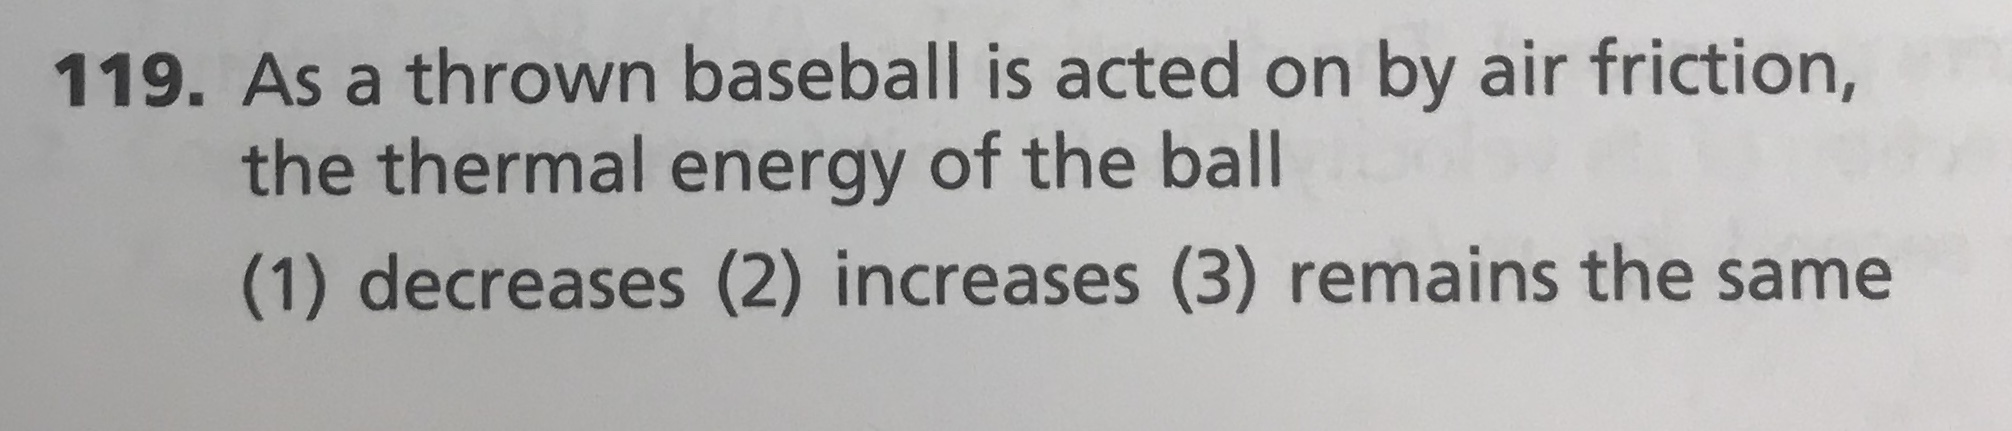 119. As a thrown baseball is acted on by air friction, the thermal energy of the ball (1) decreases (2) increases (3) remains the same